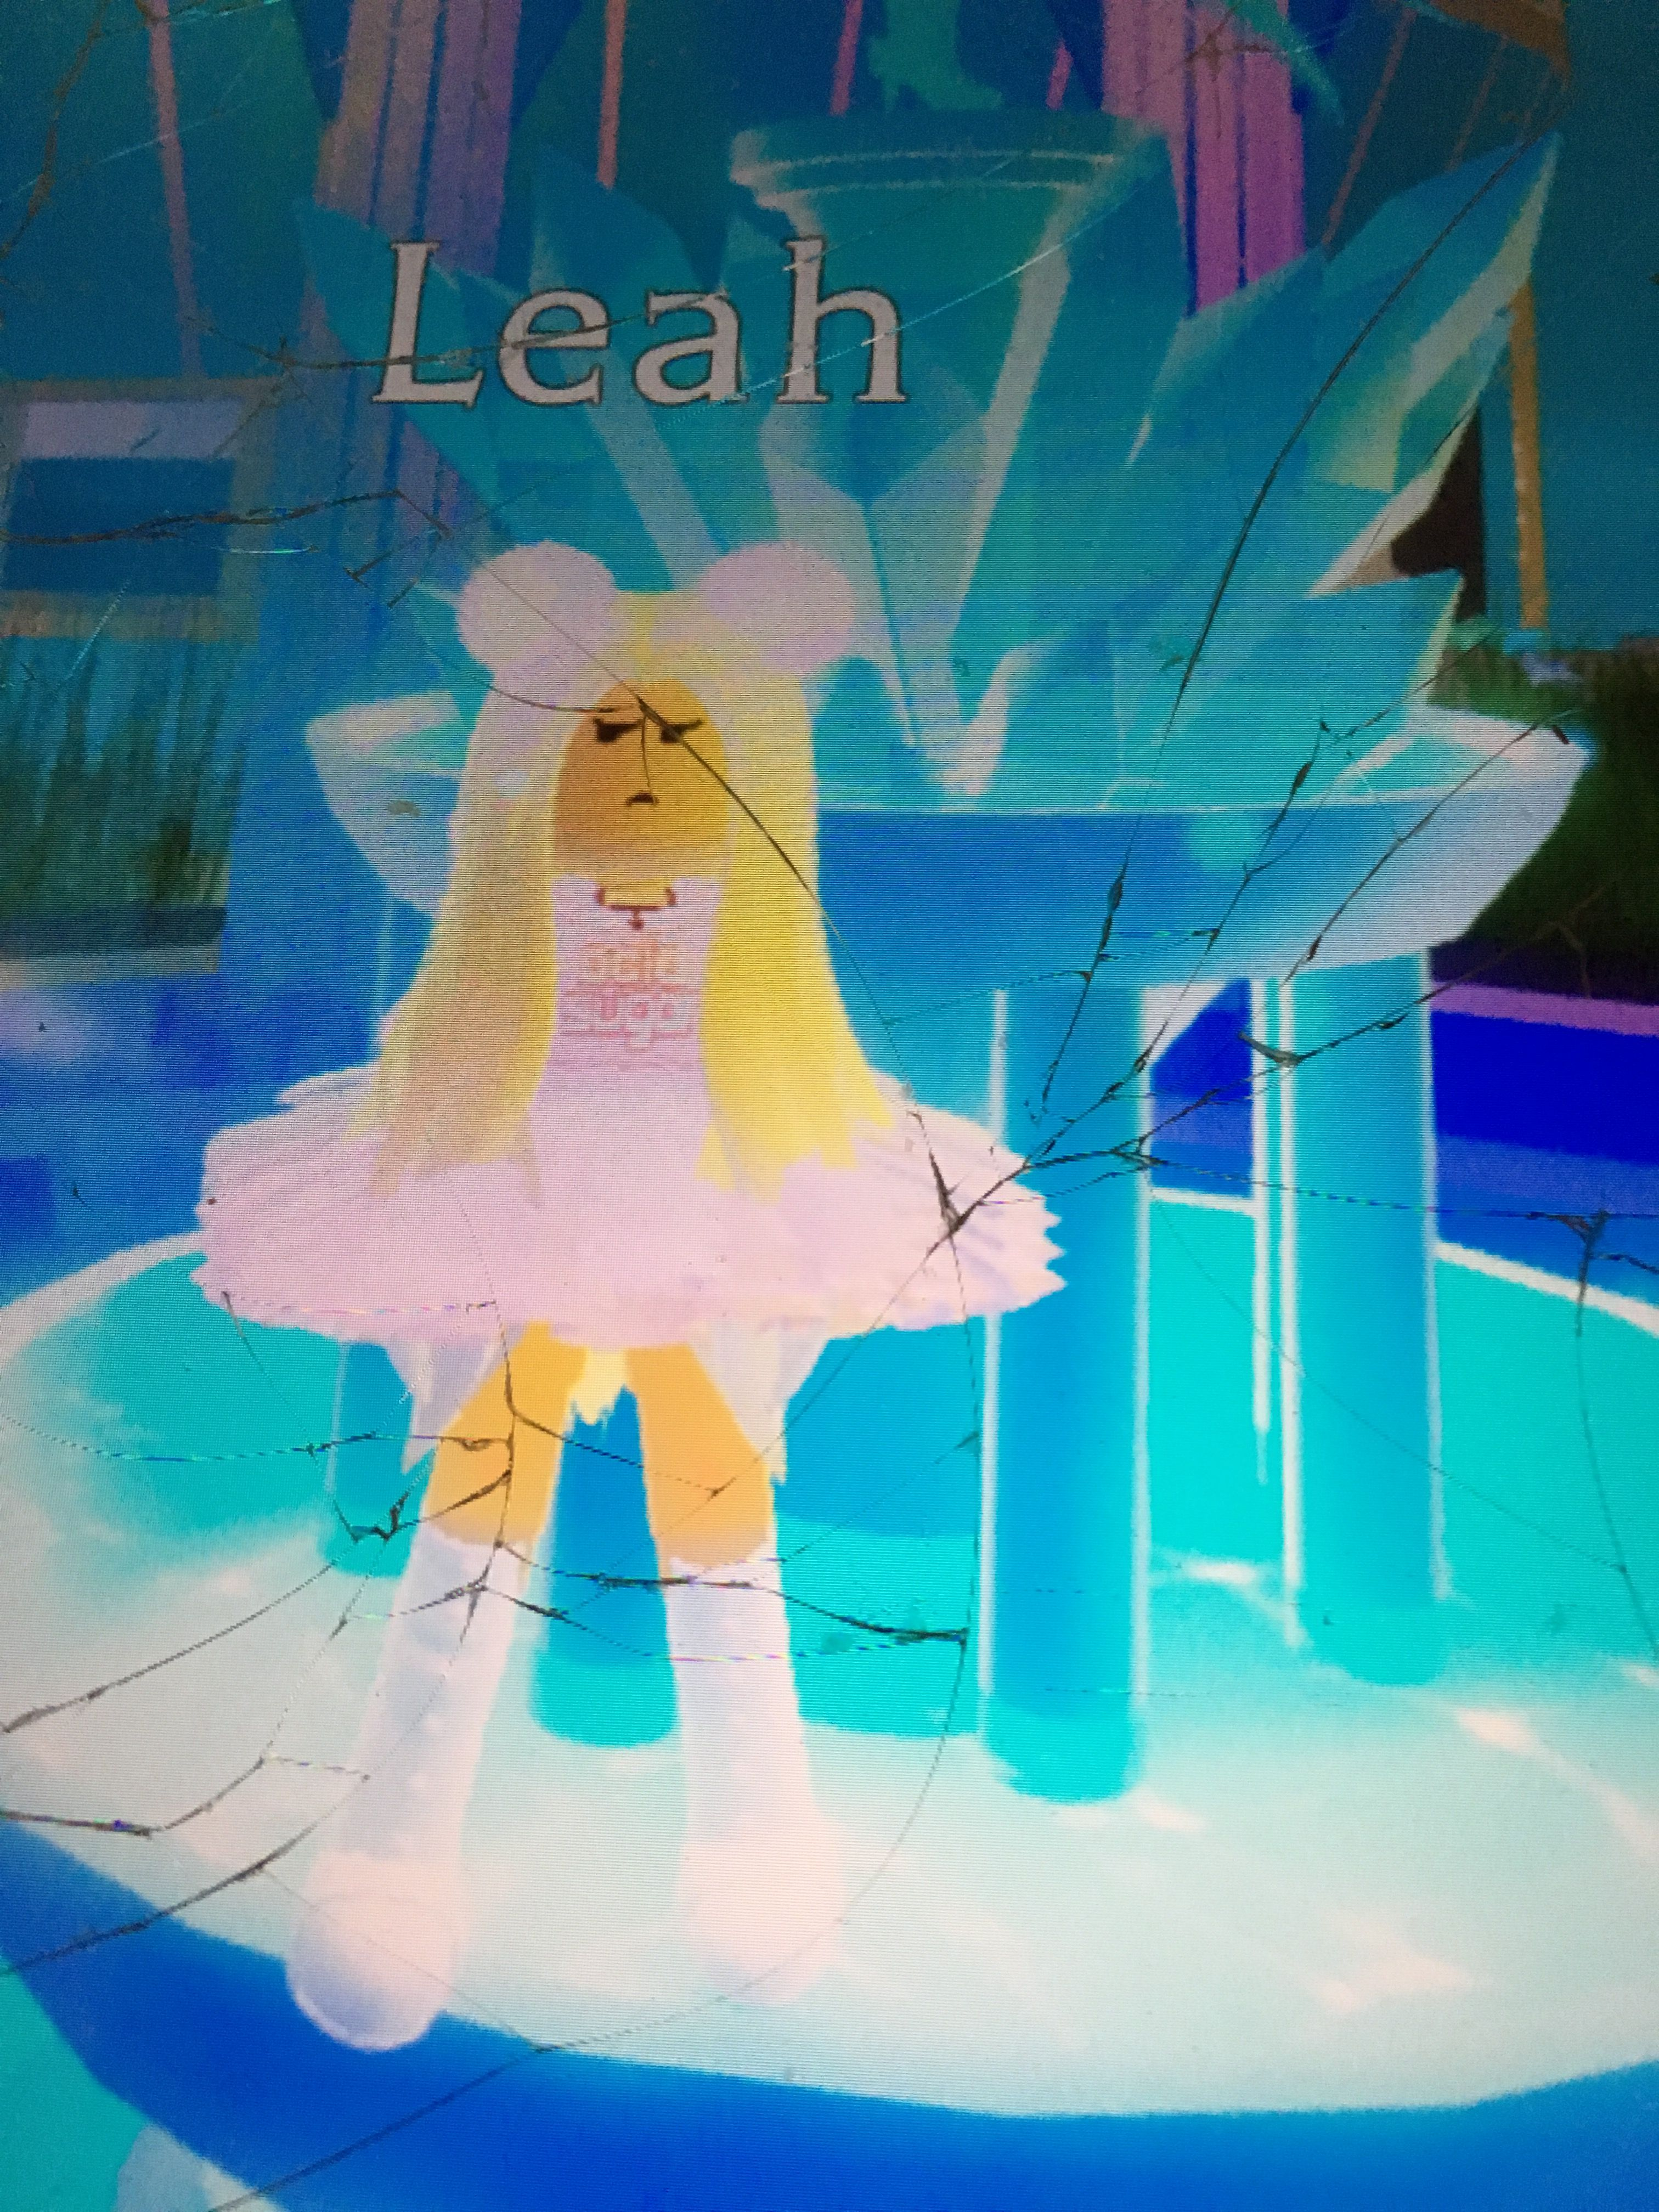 Pin by Leah Darnell on my royal high fashion Roblox